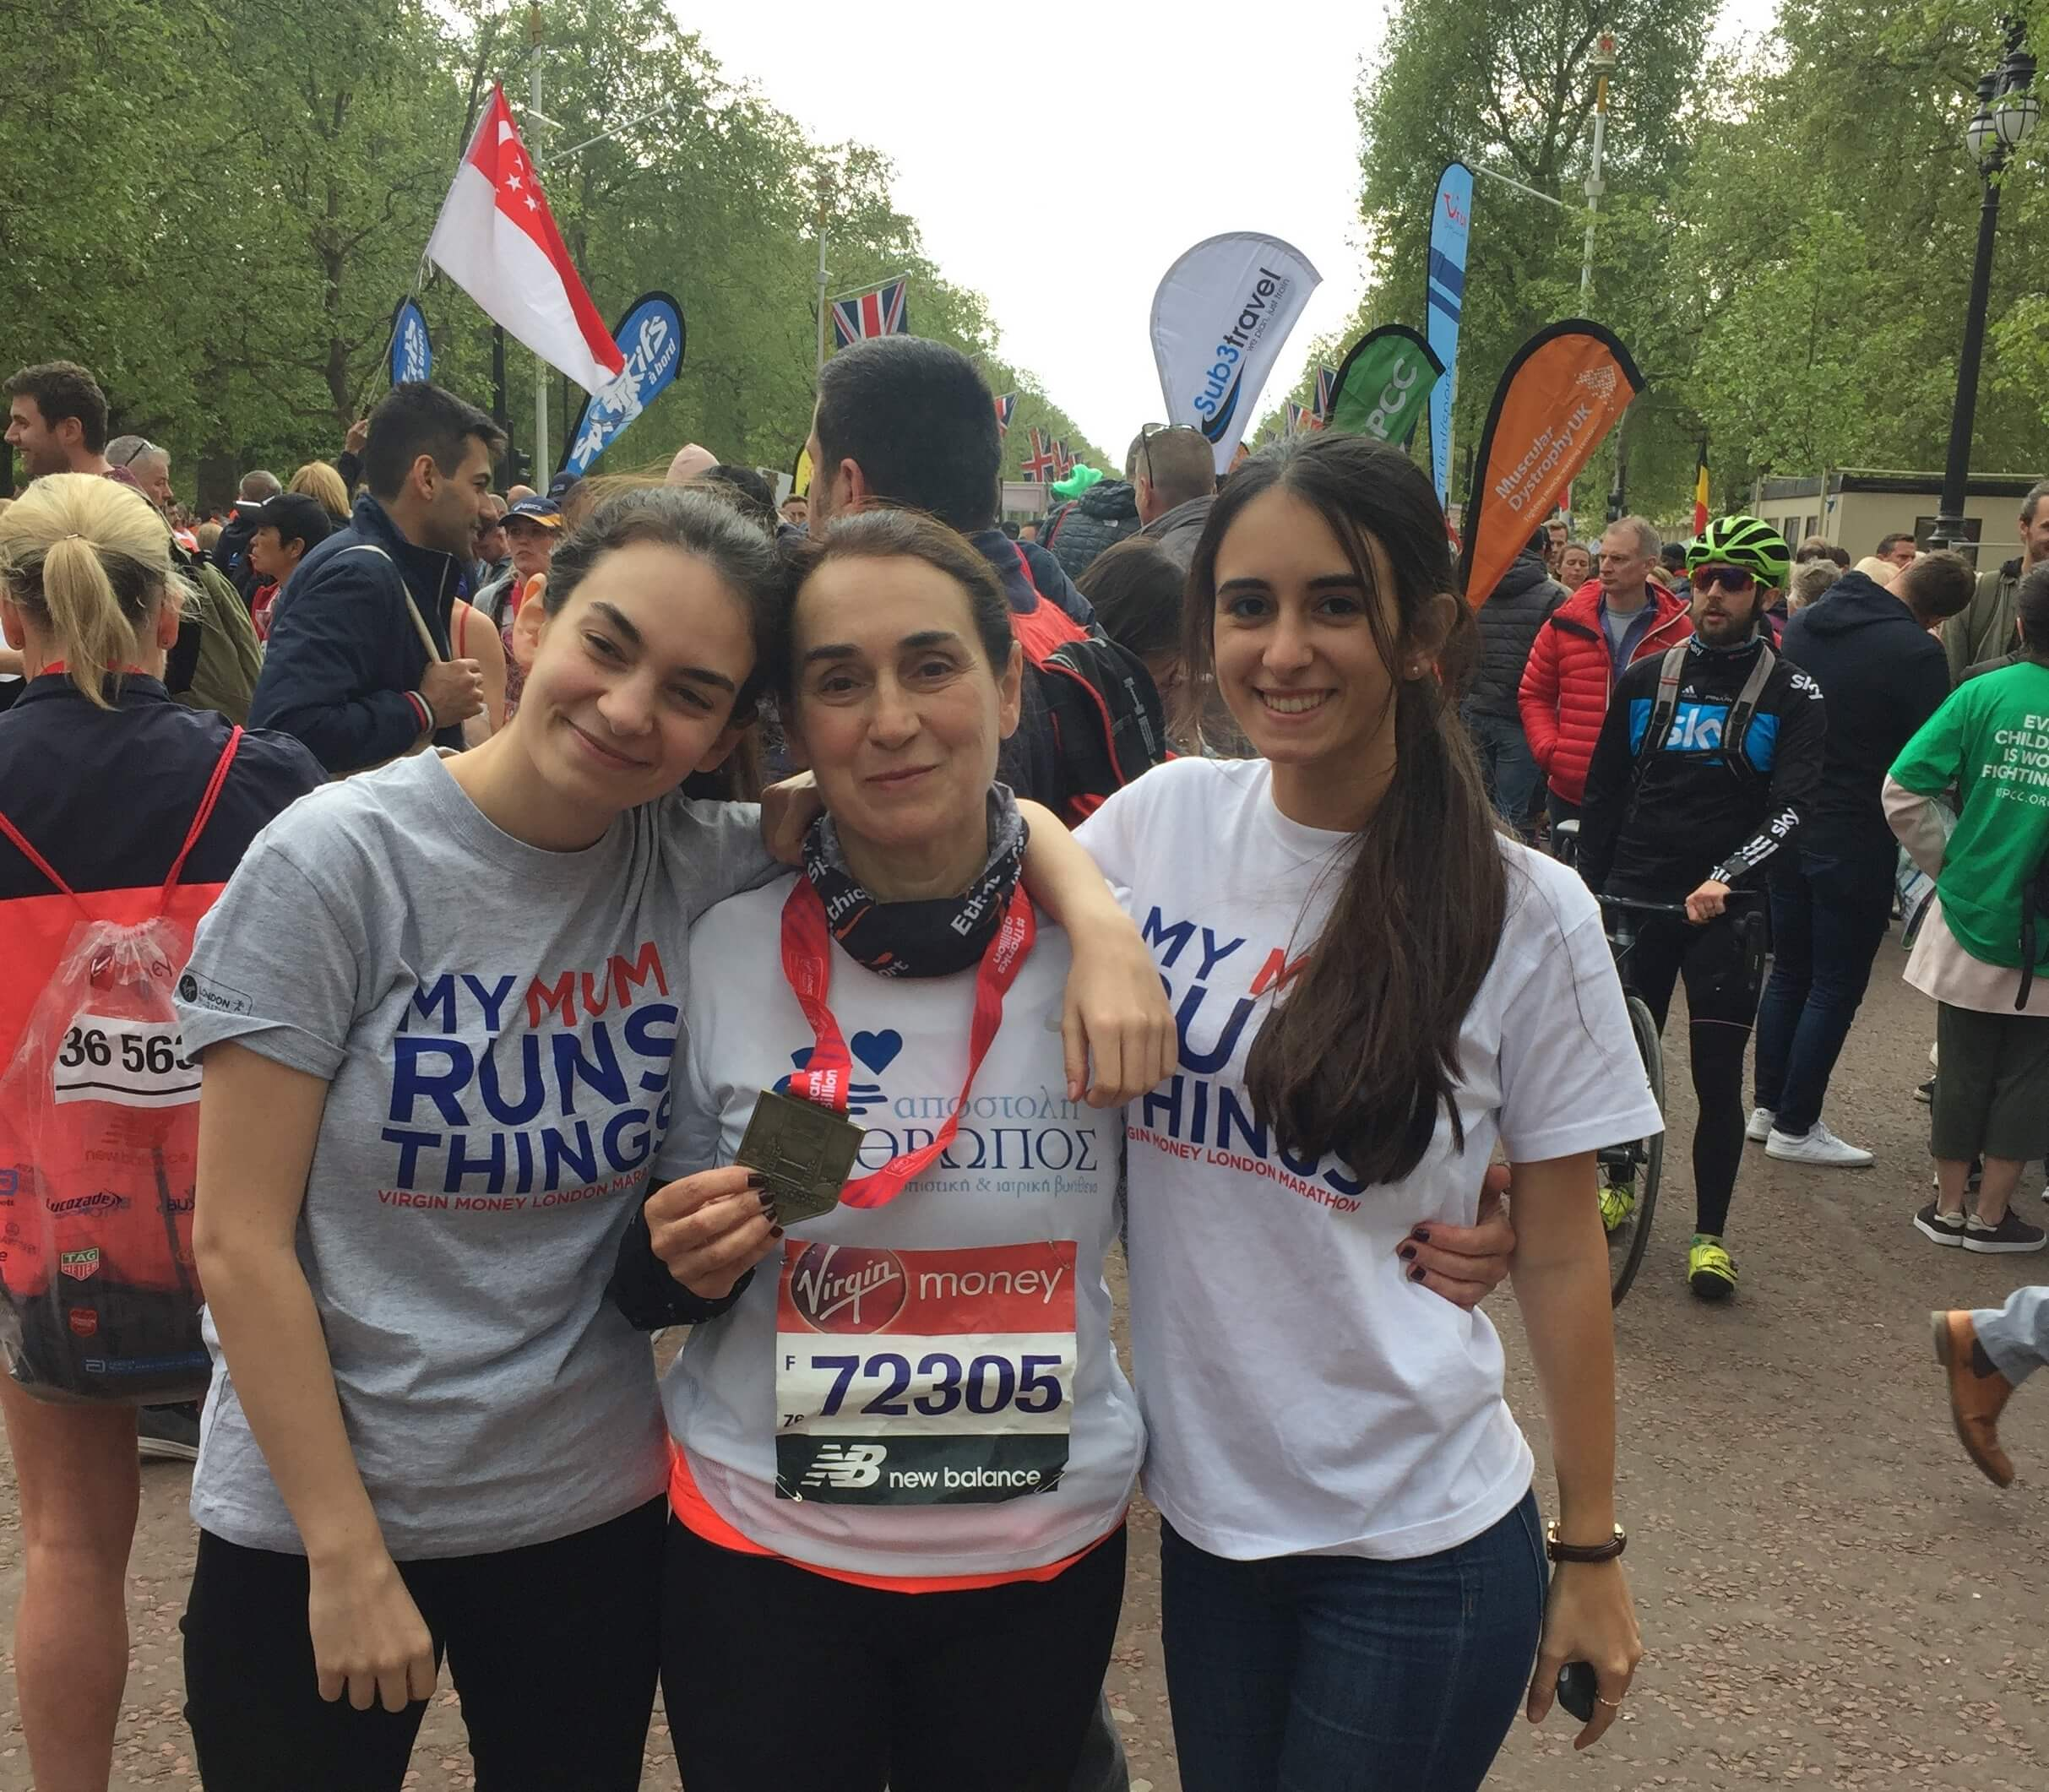 Volunteer of Mission ANTHROPOS participated in the London Marathon